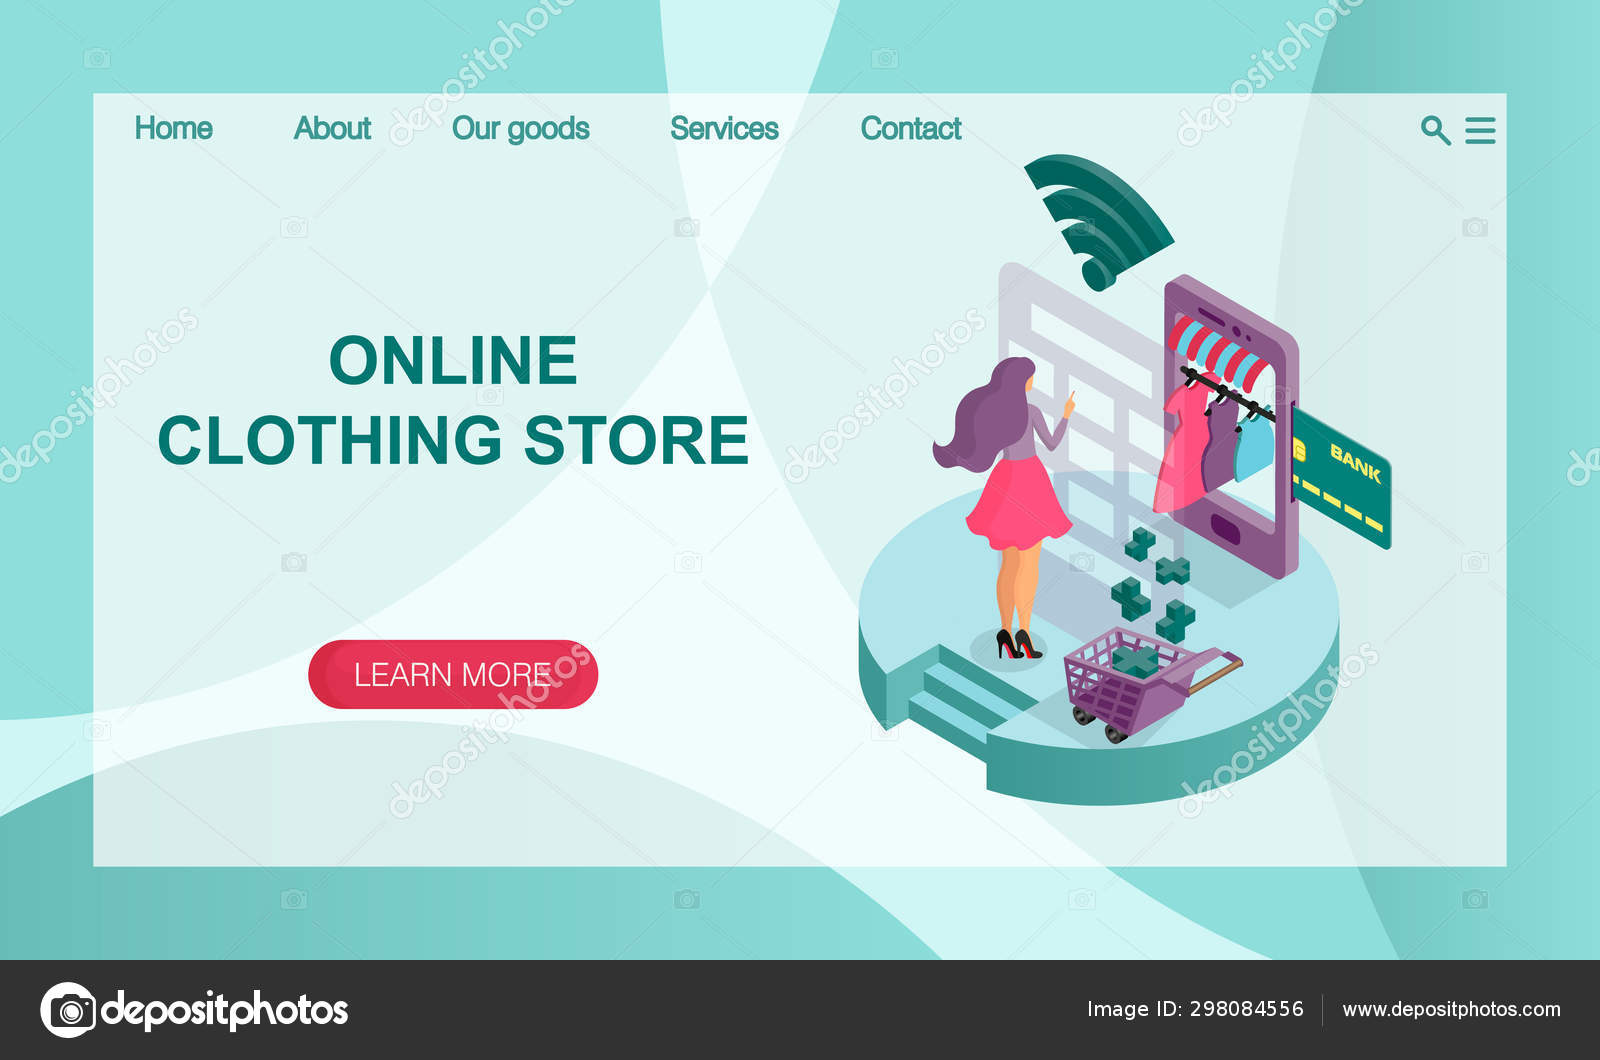 The concept of online online store of women\'s clothing. 3D isometric illustration. Vector website landing page design template